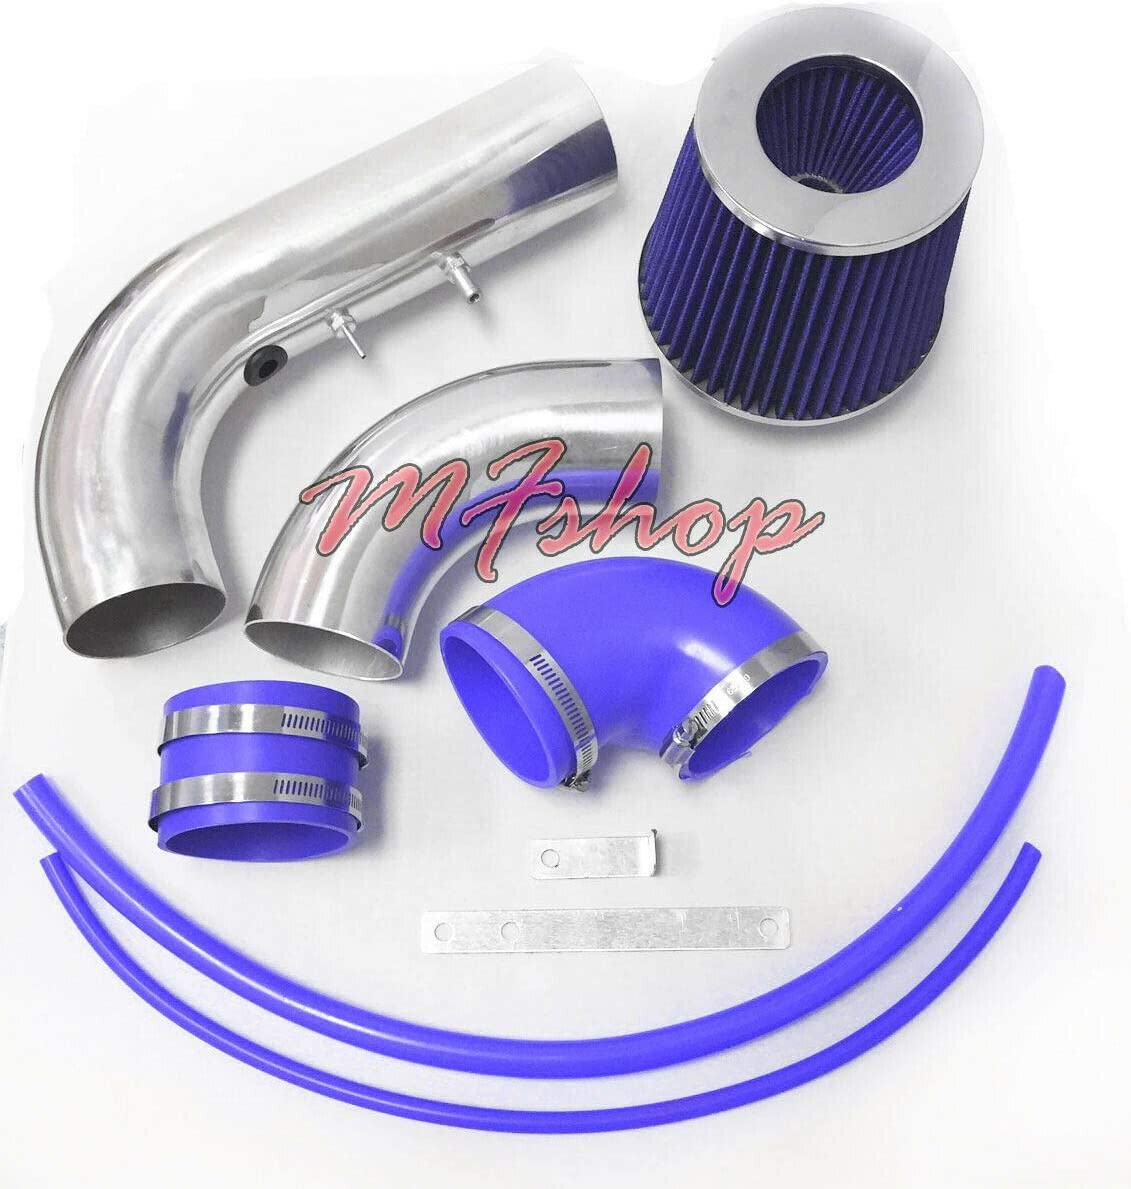 Performance 2PC Design Air Intake Filter System For 2002 2003 2004 2005 Chevy Cavalier Pontiac Sunfire With 2.2L L4 Ecotec Engine Black Accessories with Blue Filter